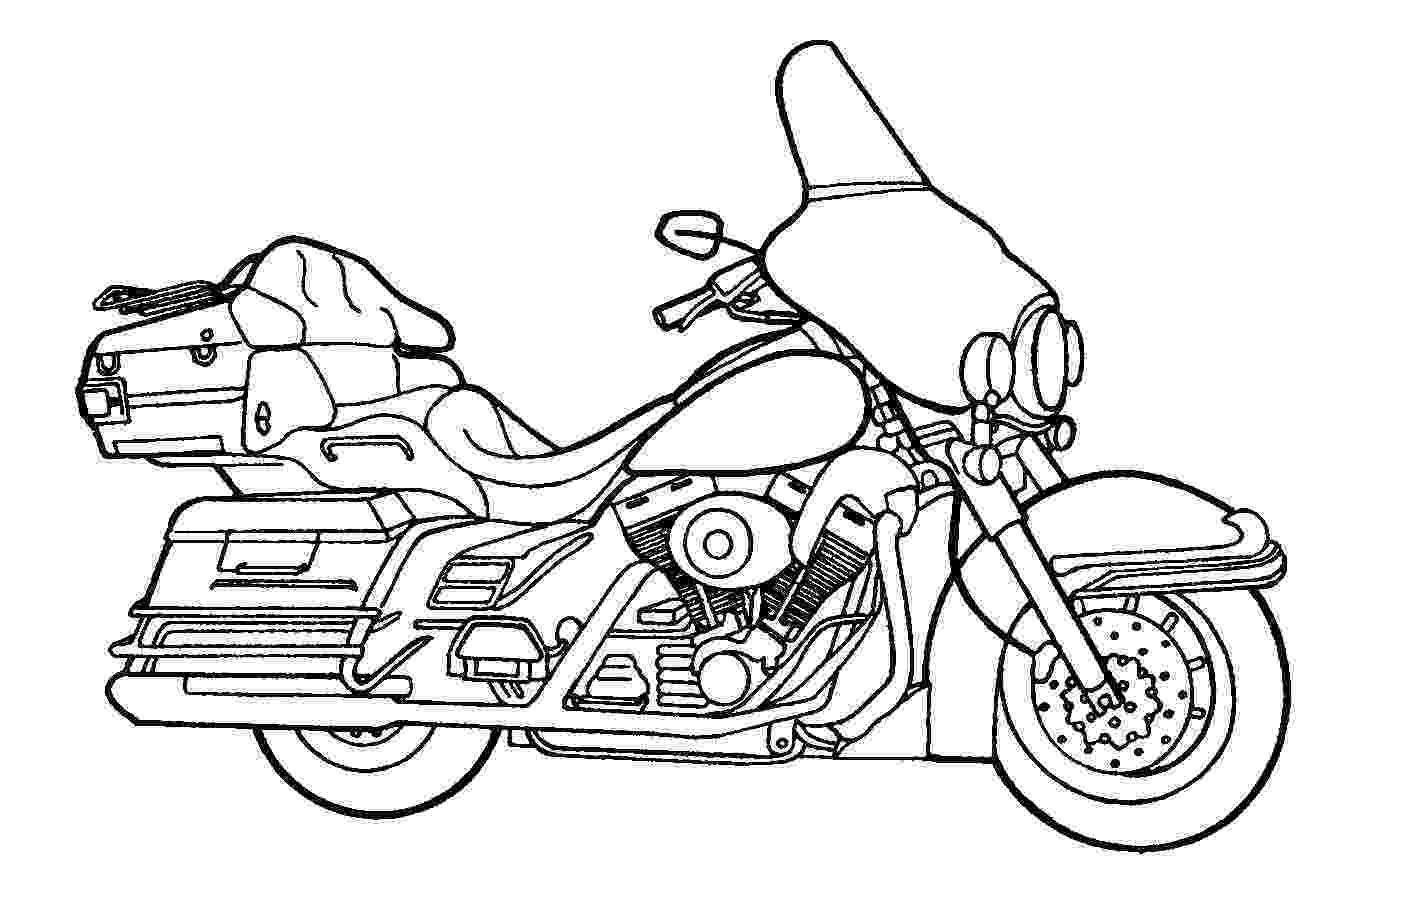 police motorcycle coloring pages printable motorcycle coloring pages for preschoolers motorcycle police pages coloring